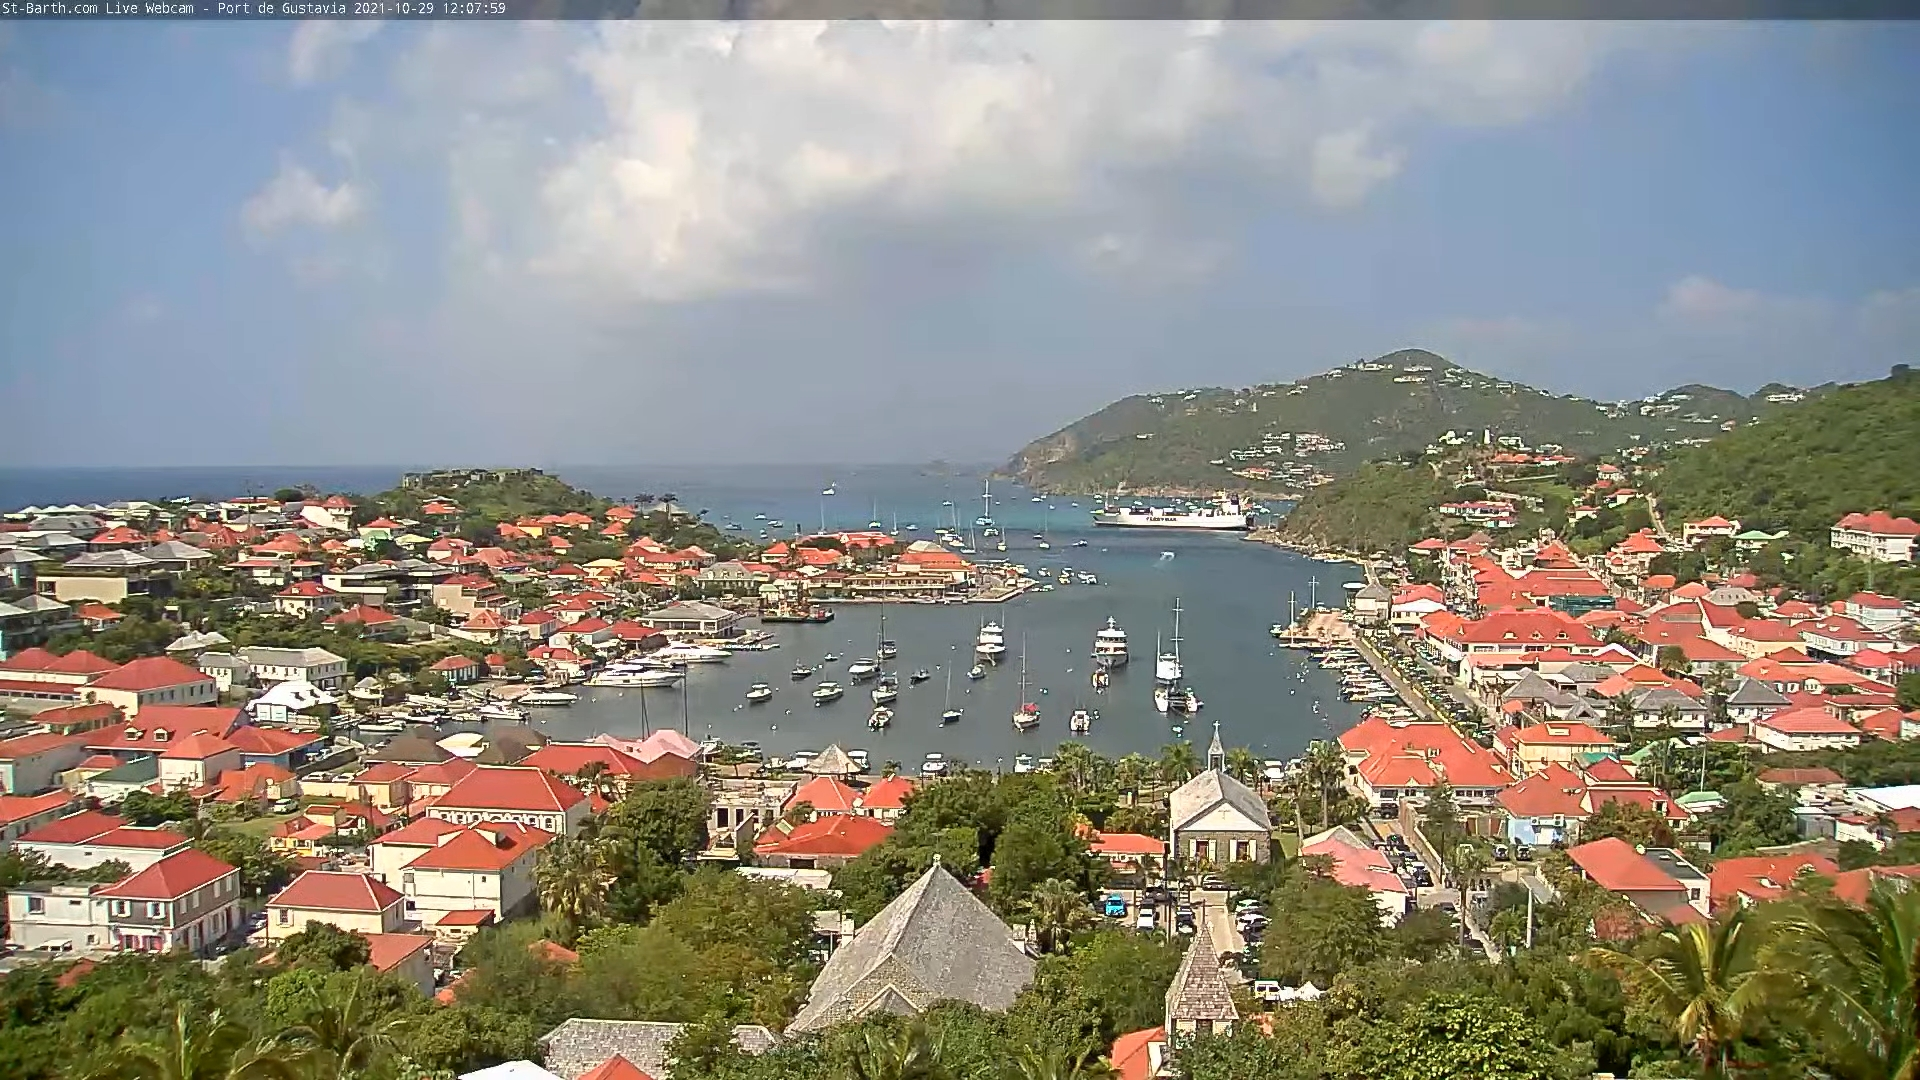 webcam St-Barth - Port de Gustavia